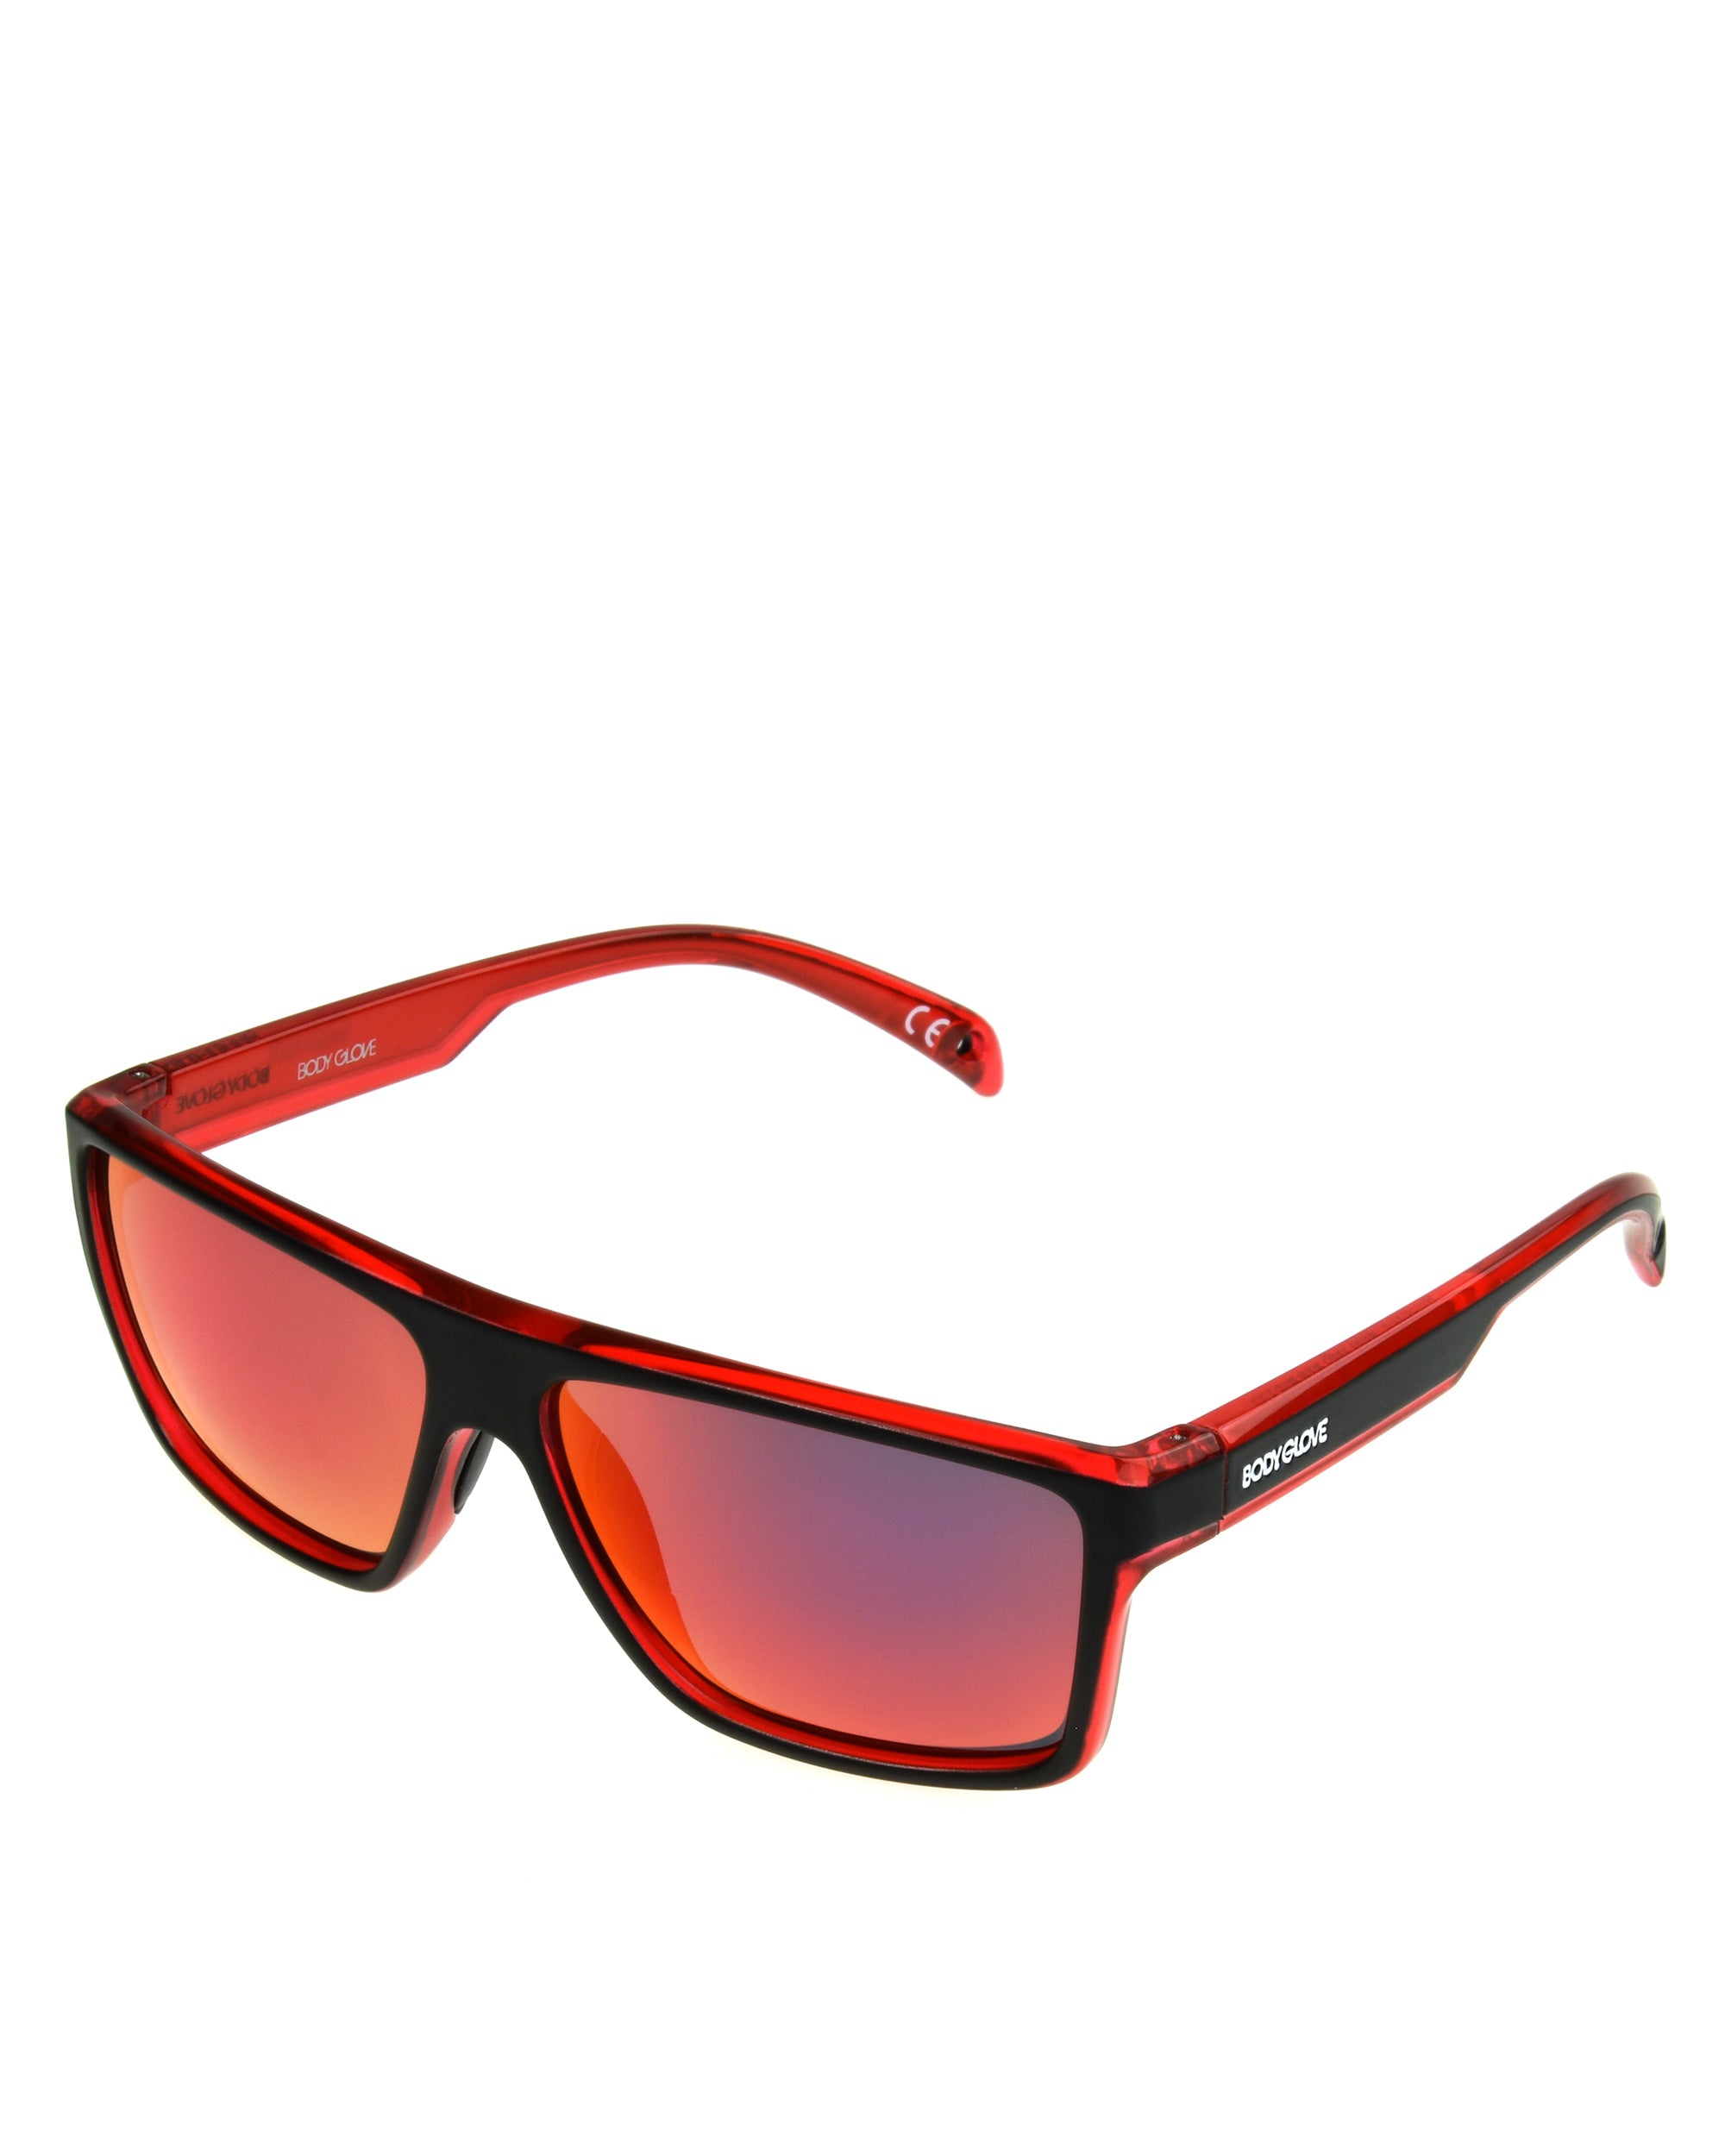 Men's BGFL1801 Sunglasses - Red